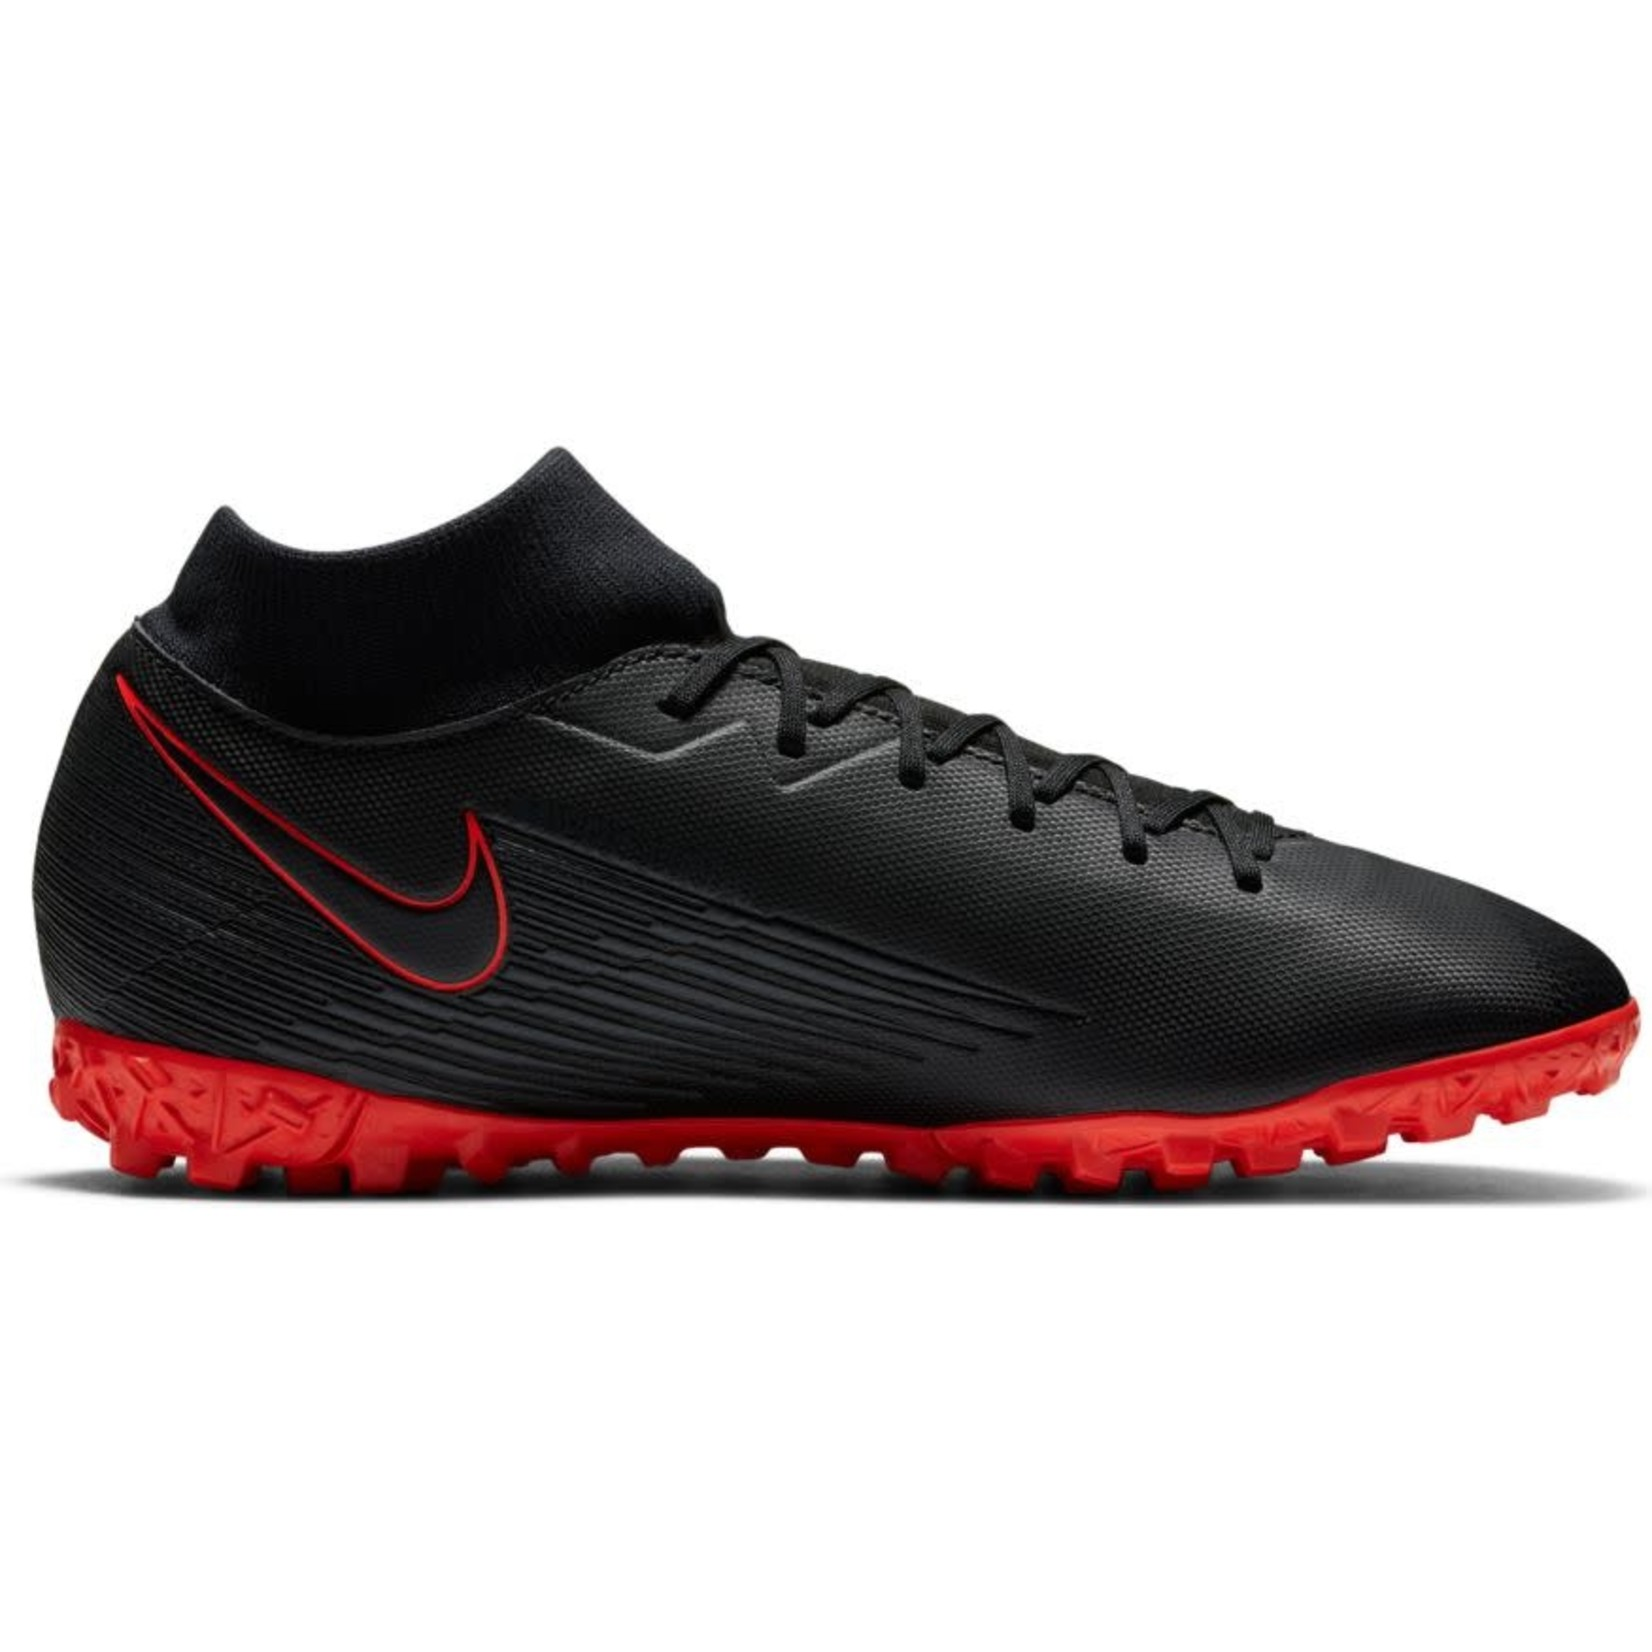 NIKE MERCURIAL SUPERFLY 7 ACADEMY TF (BLACK/RED)